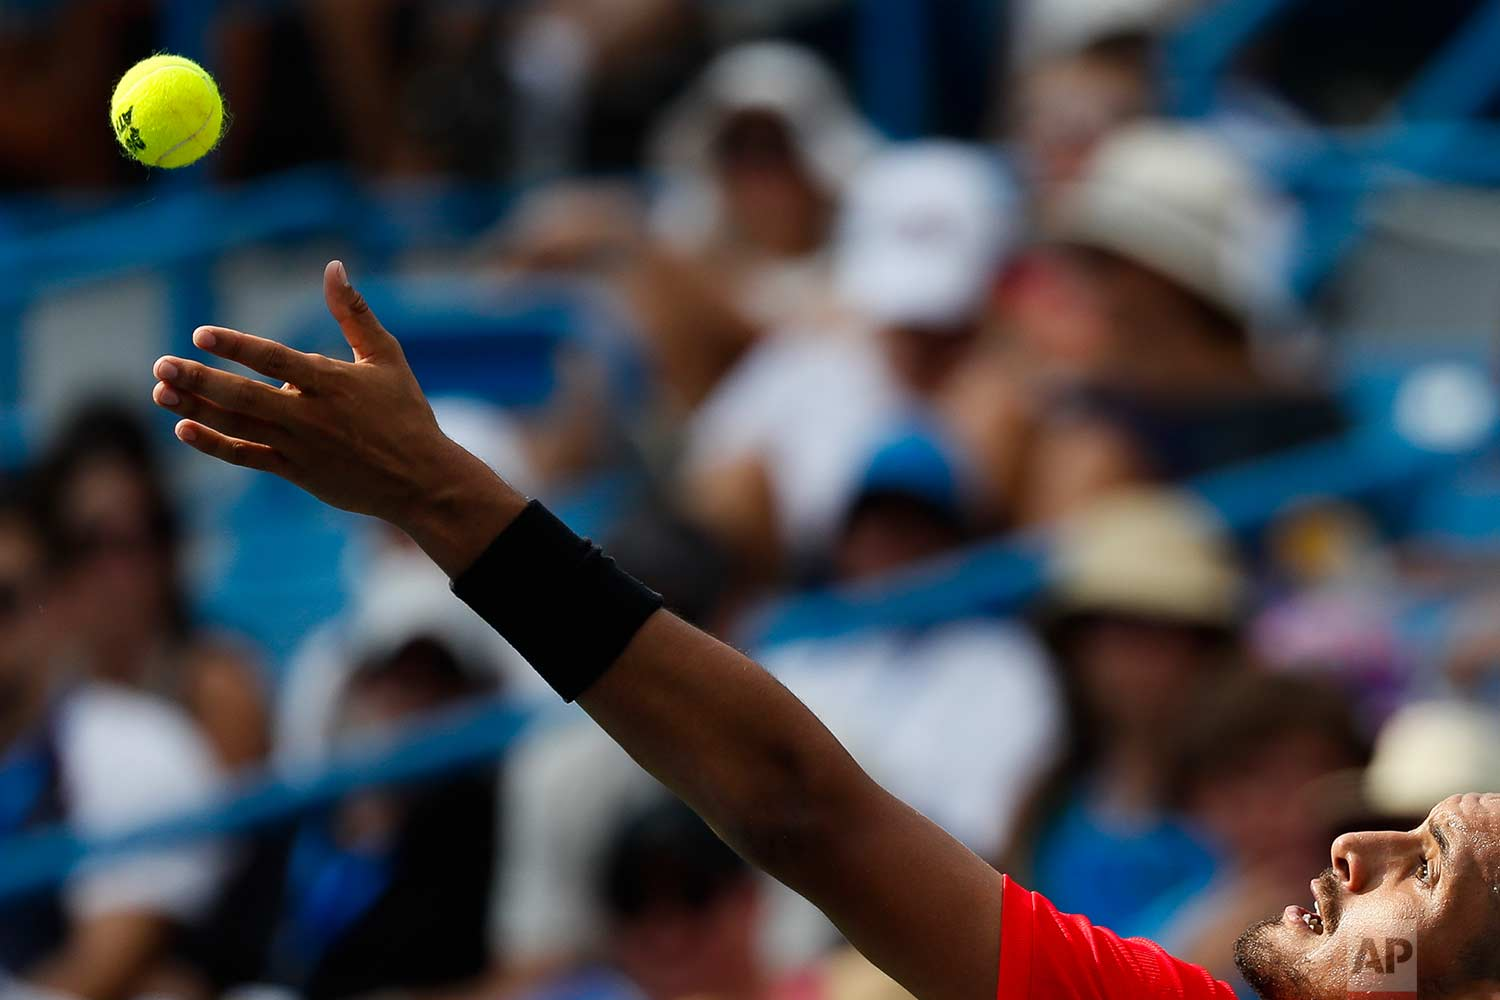 Nick Kyrgios, of Australia, serves to Grigor Dimitrov, of Bulgaria, during the men's singles final at the Western & Southern Open, Sunday, Aug. 20, 2017, in Mason, Ohio. Dimitrov won 6-3, 7-5. (AP Photo/John Minchillo)